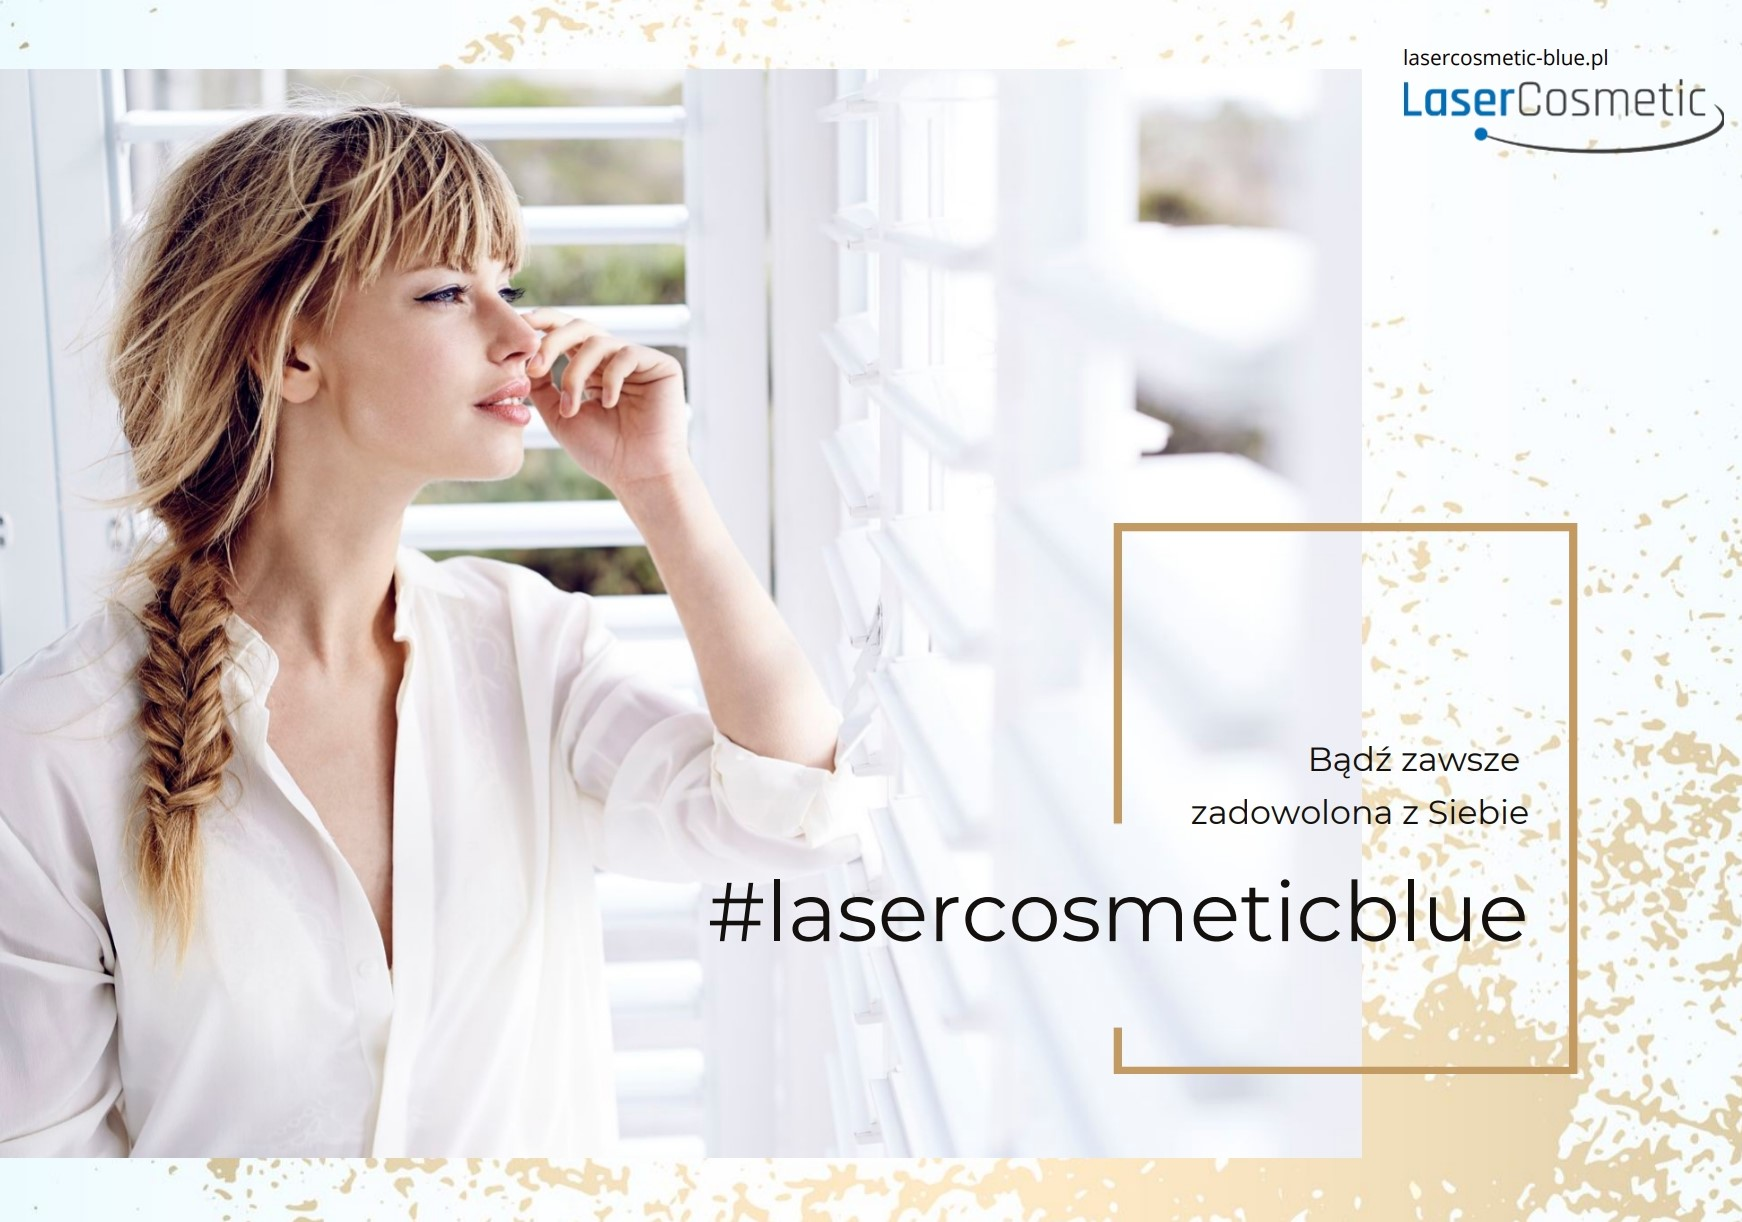 #lasercosmeticblue